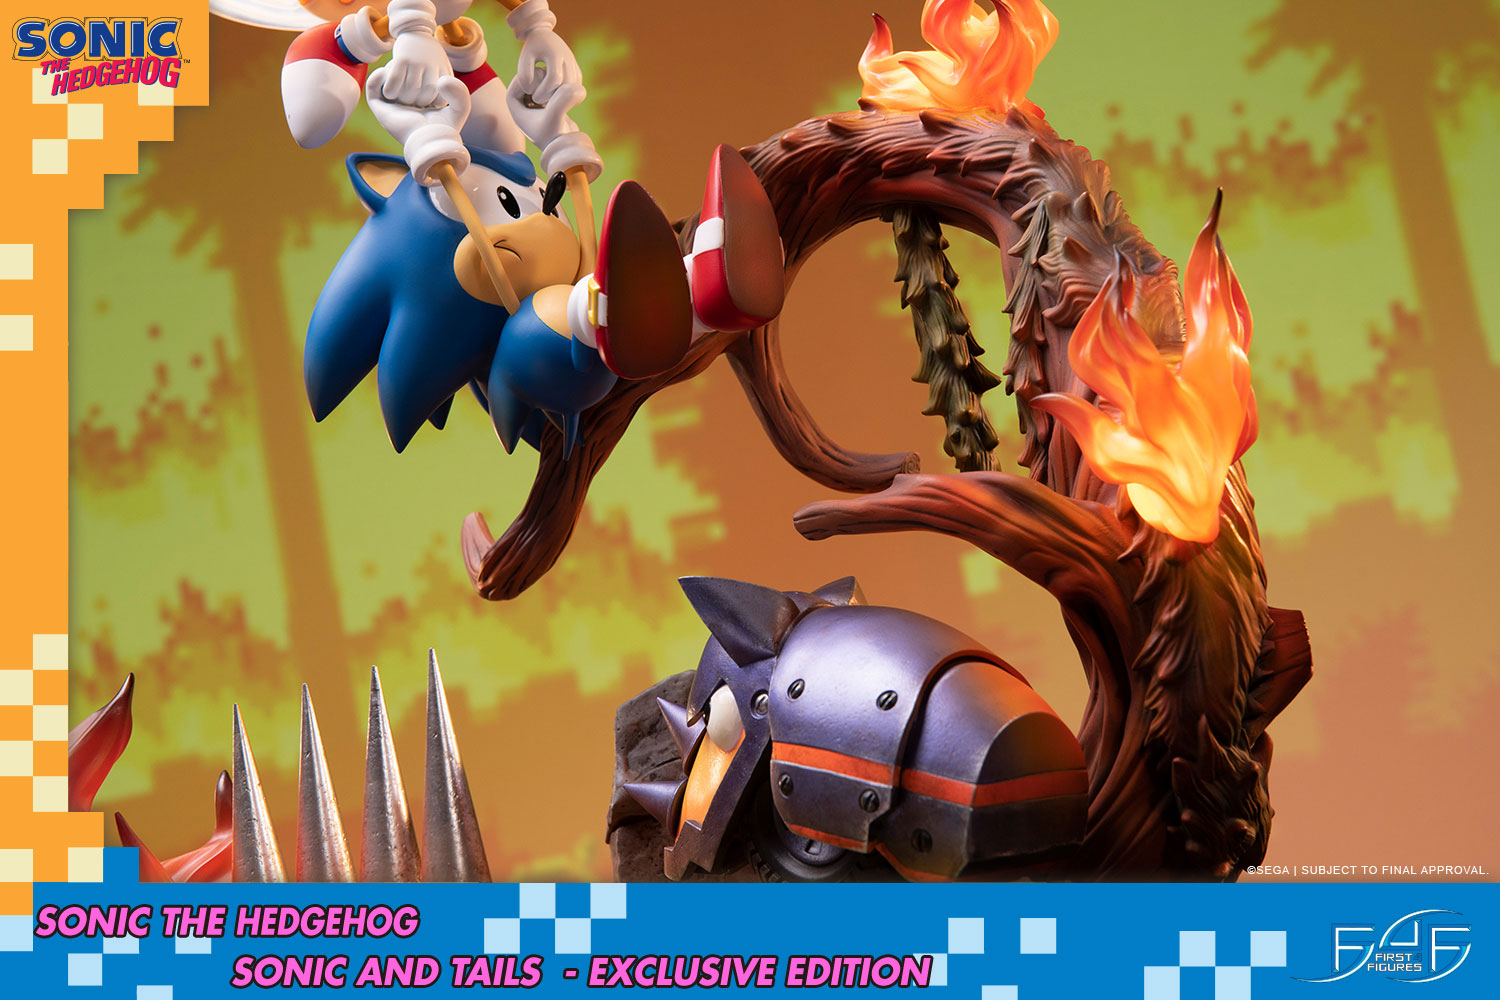 Sonic and Tails (Exclusive Edition)